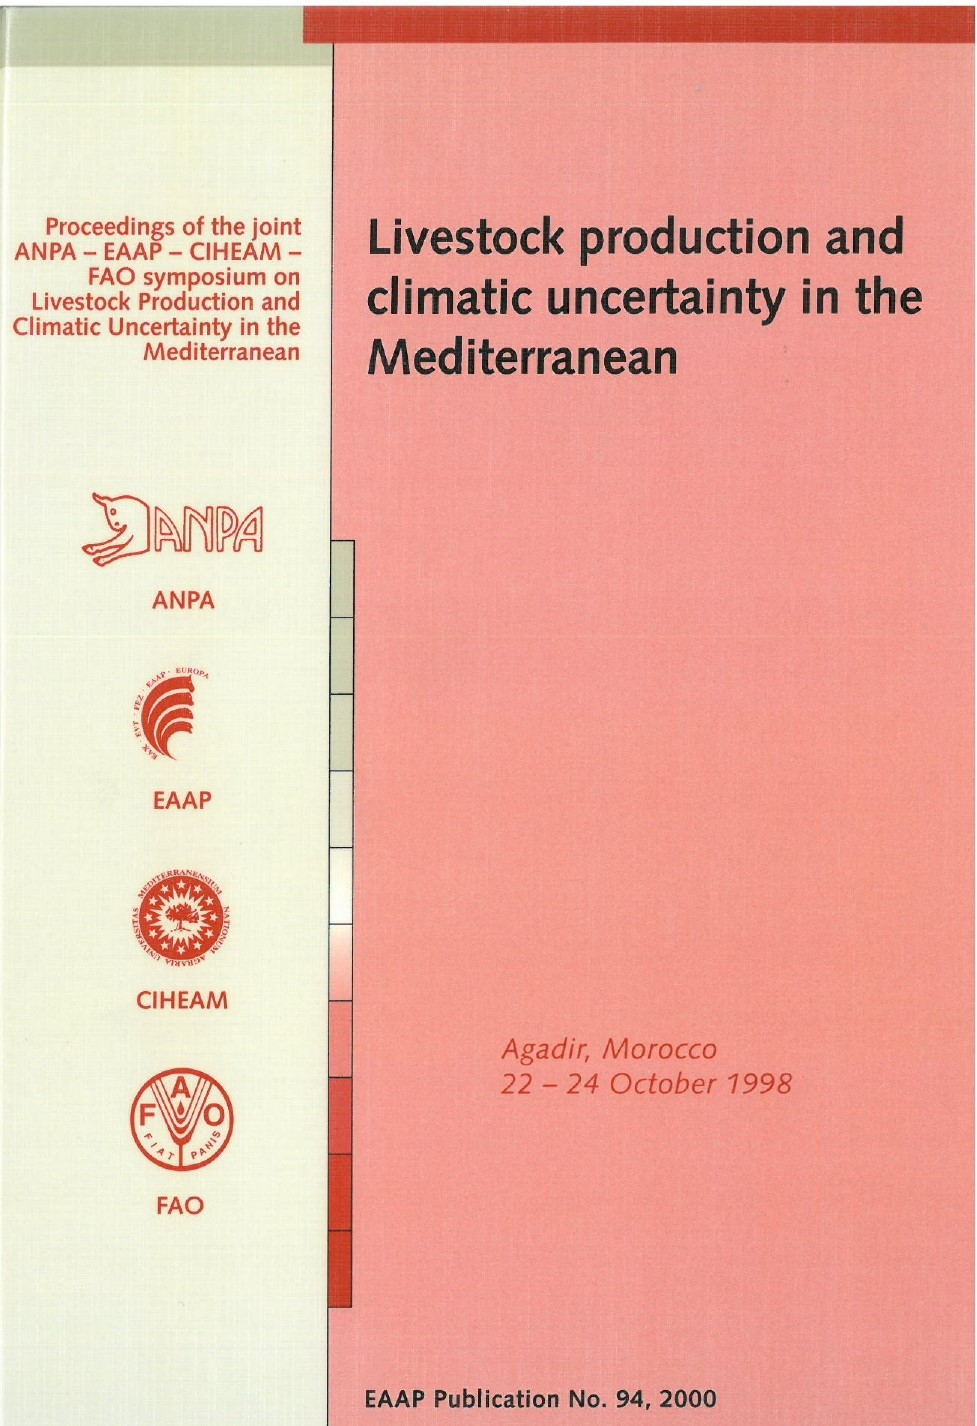 Livestock production and climatic uncertainty in the Mediterranean